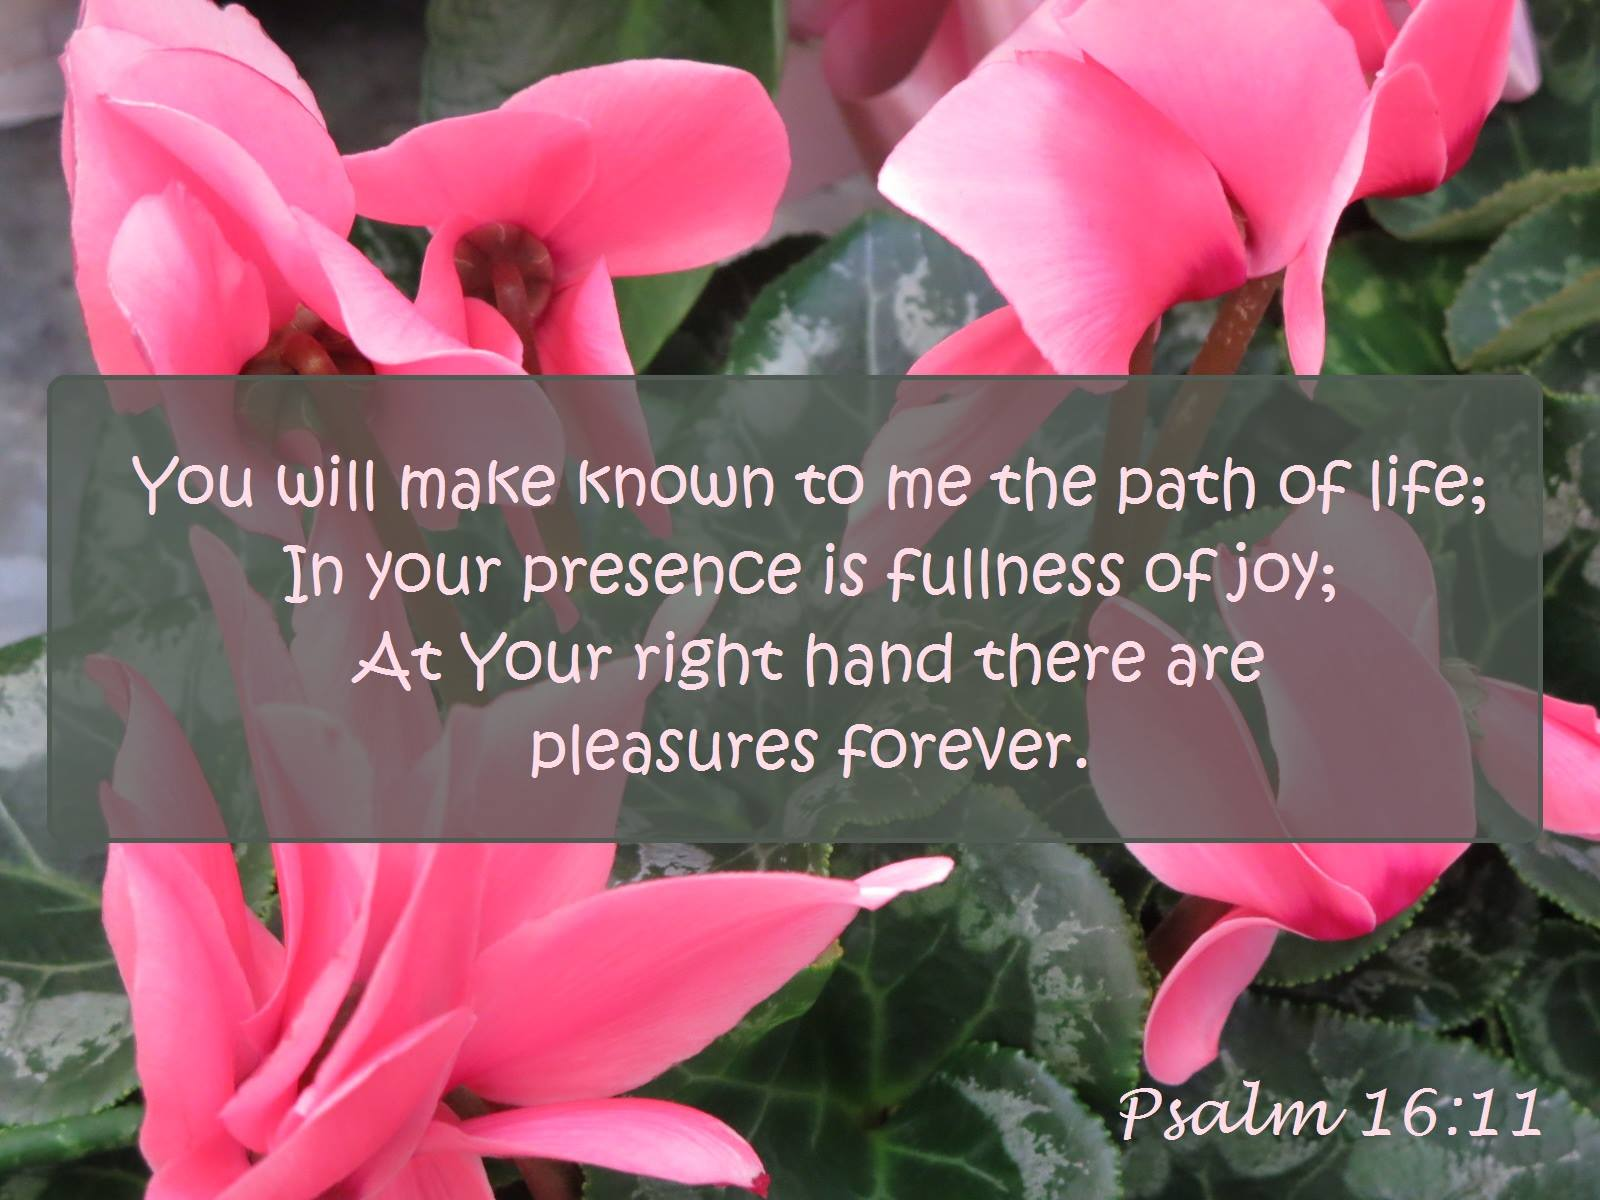 Psa. 16:11 You will make known to me the path of life; in Your presence is fullness of joy; at Your right hand there are pleasures forever.